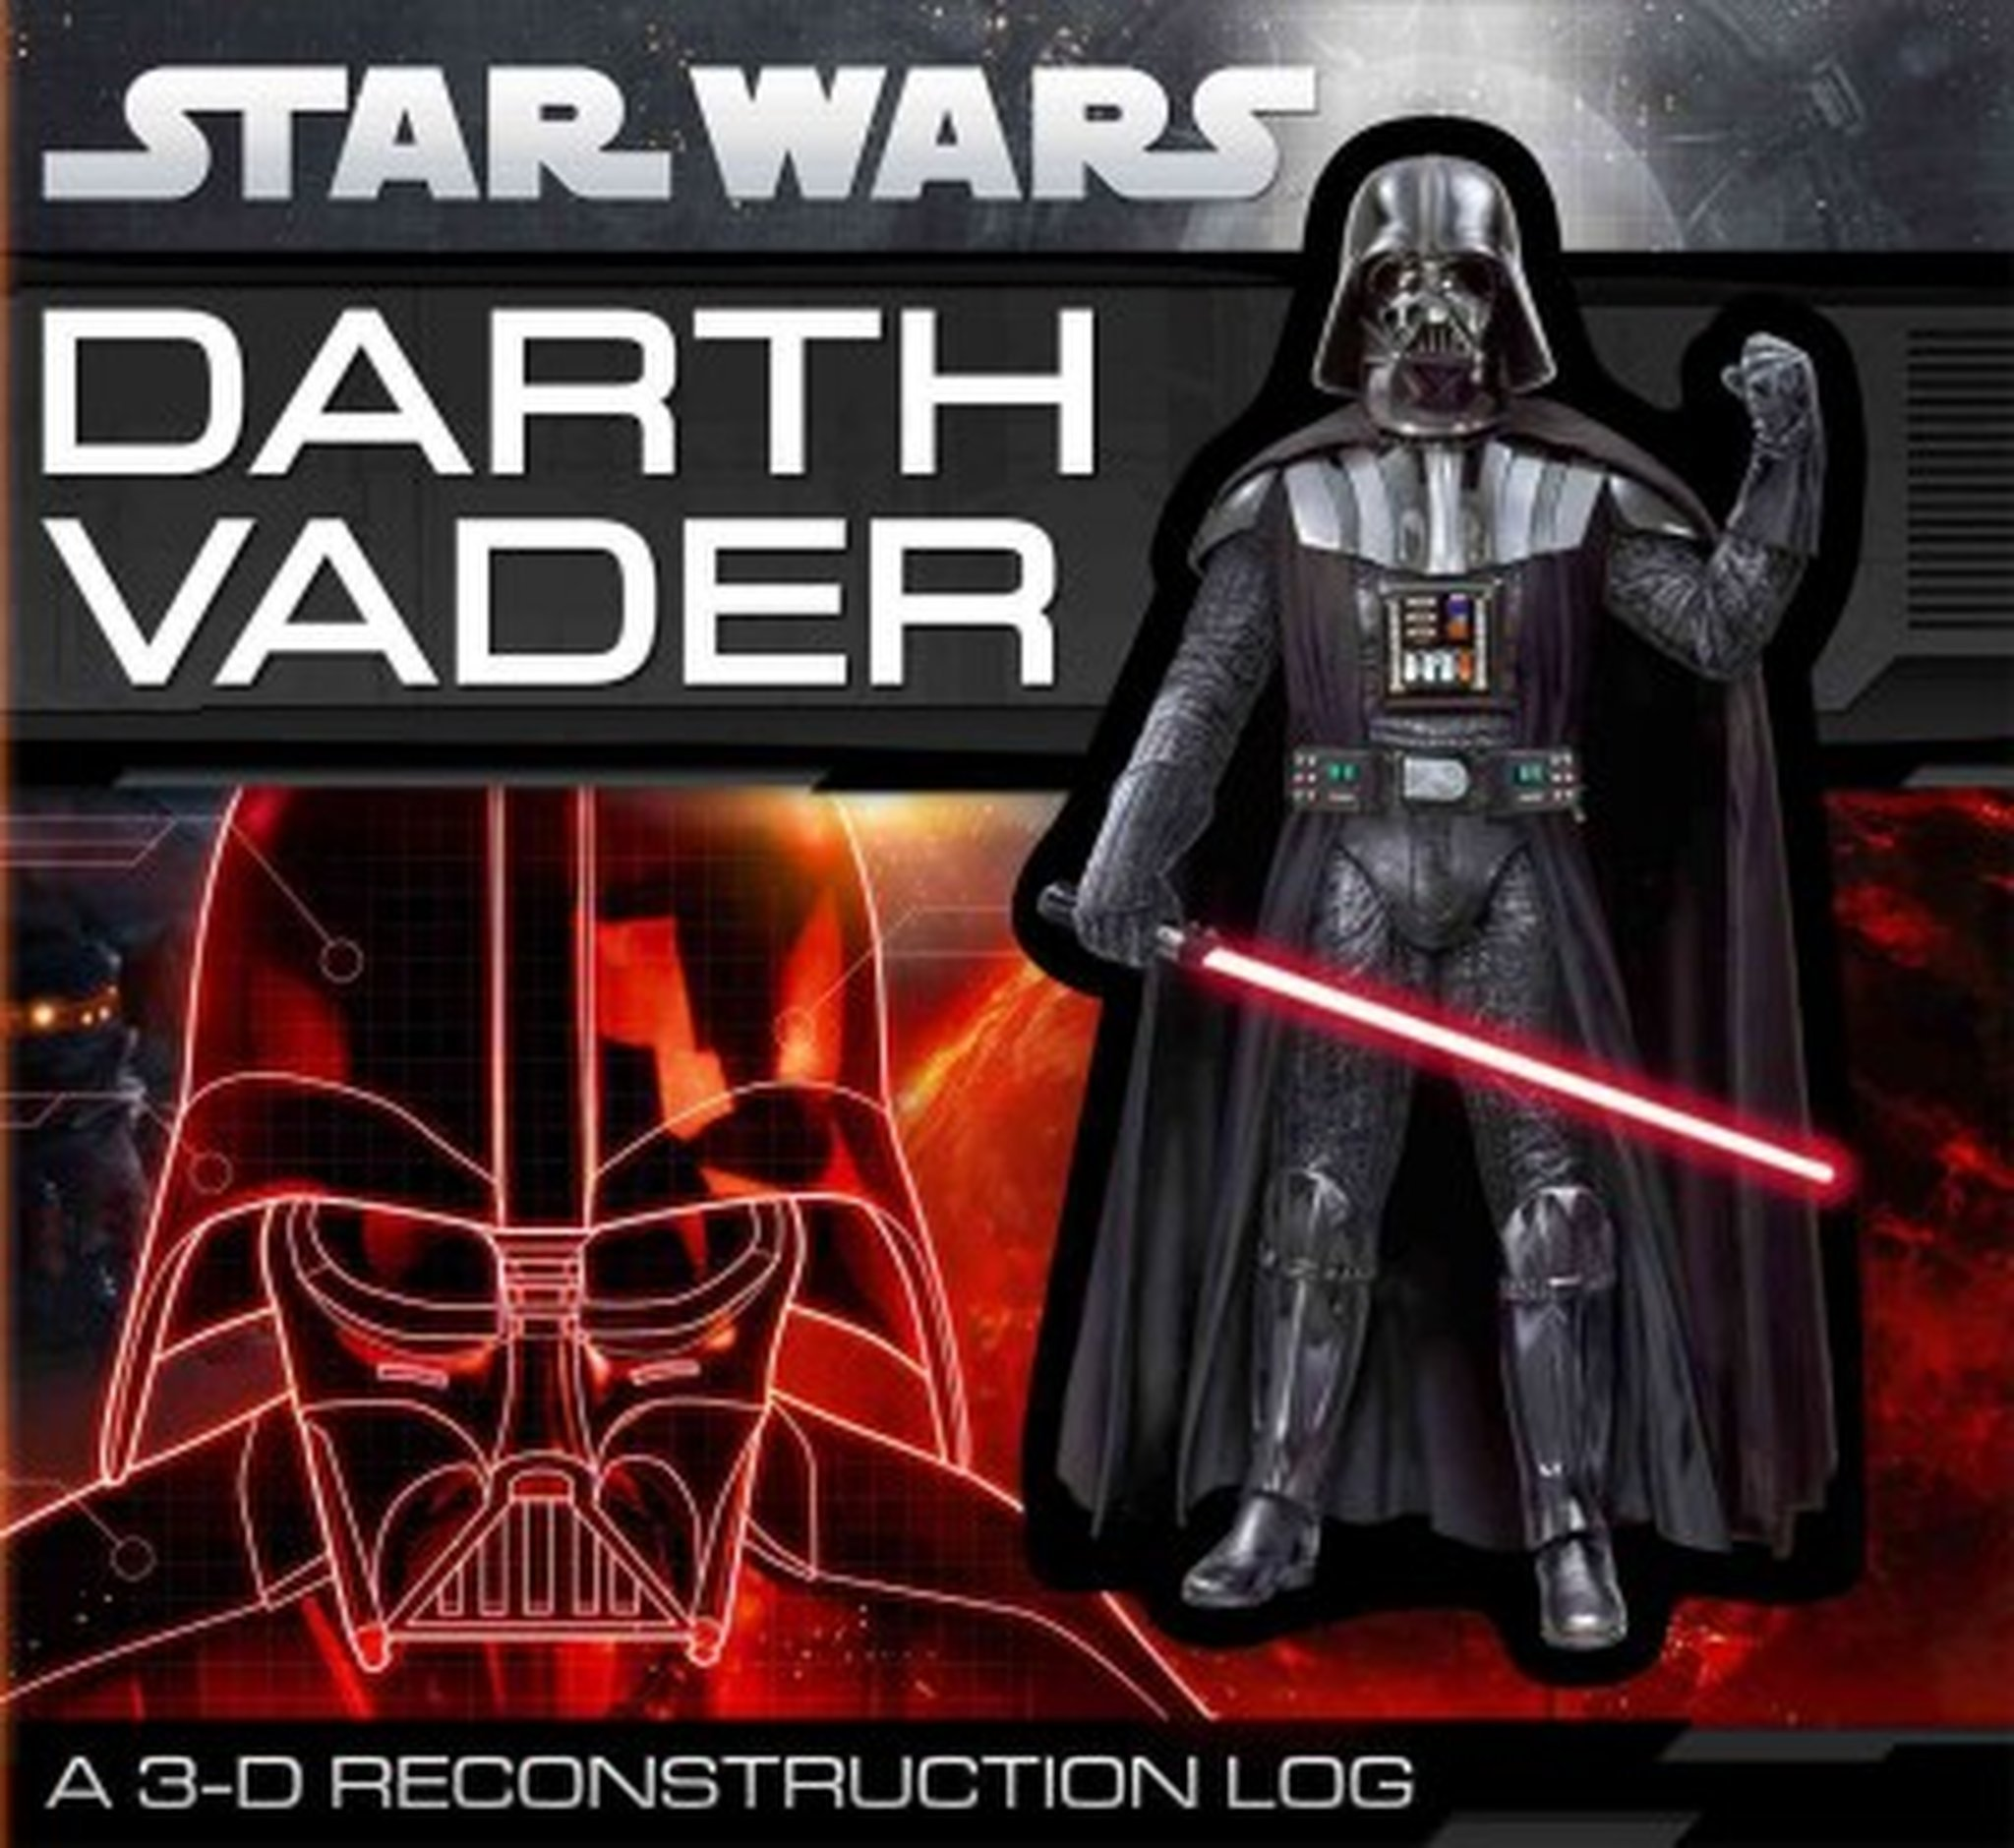 Star Wars Darth Vader: A 3-D Reconstruction Log